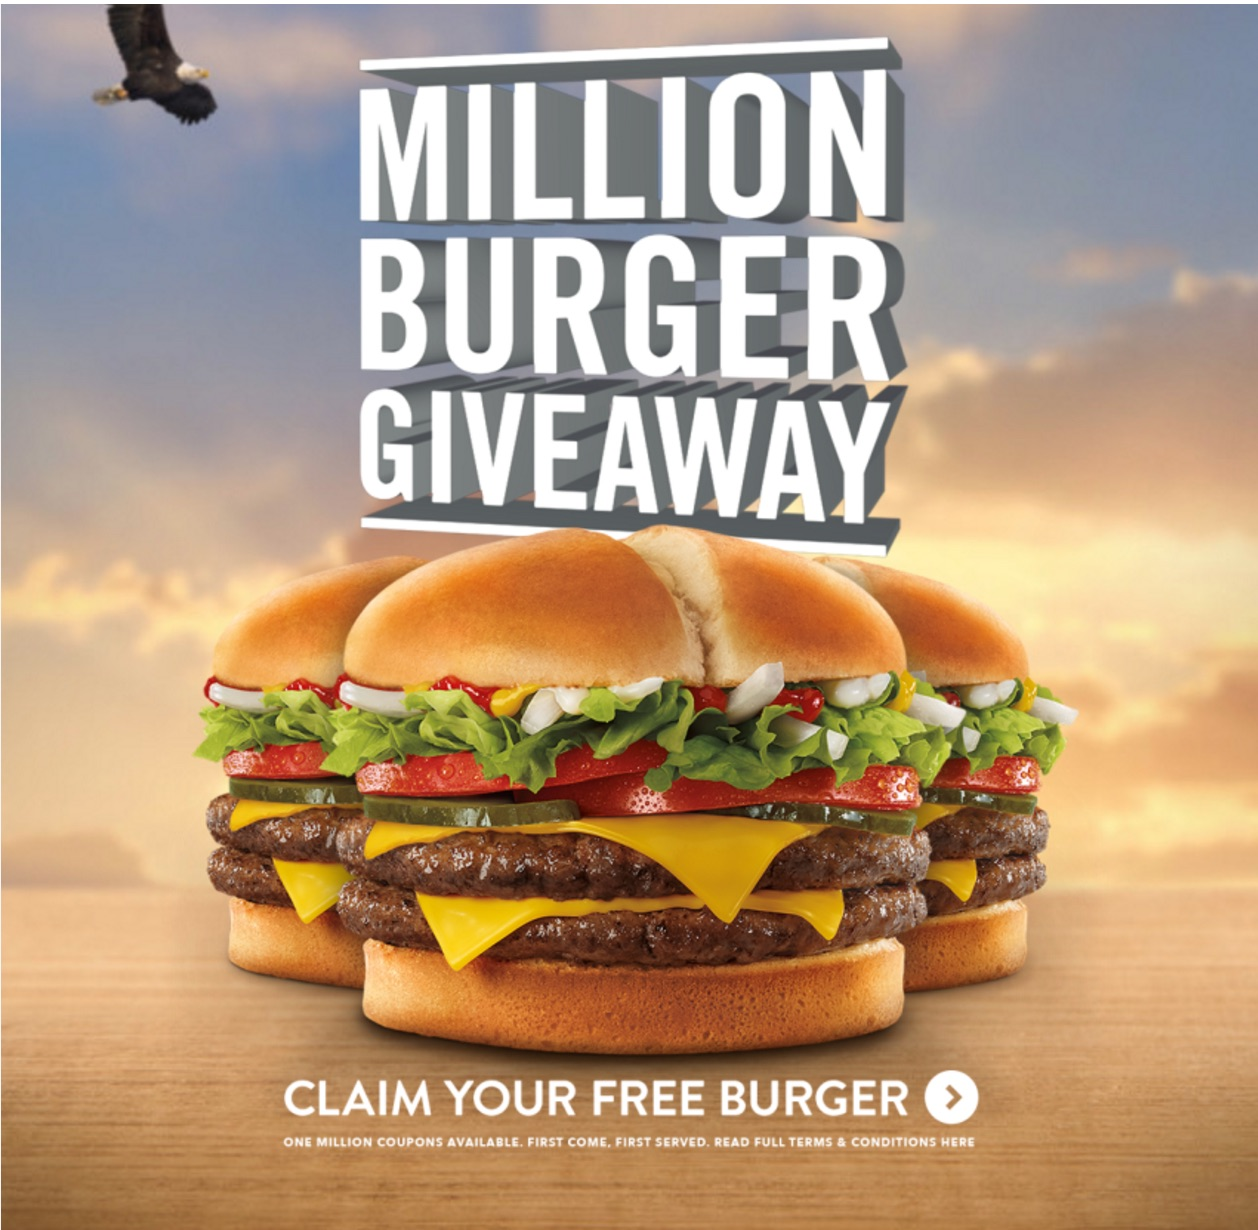 Jack In The Box Is Giving Away One Million FREE Burgers